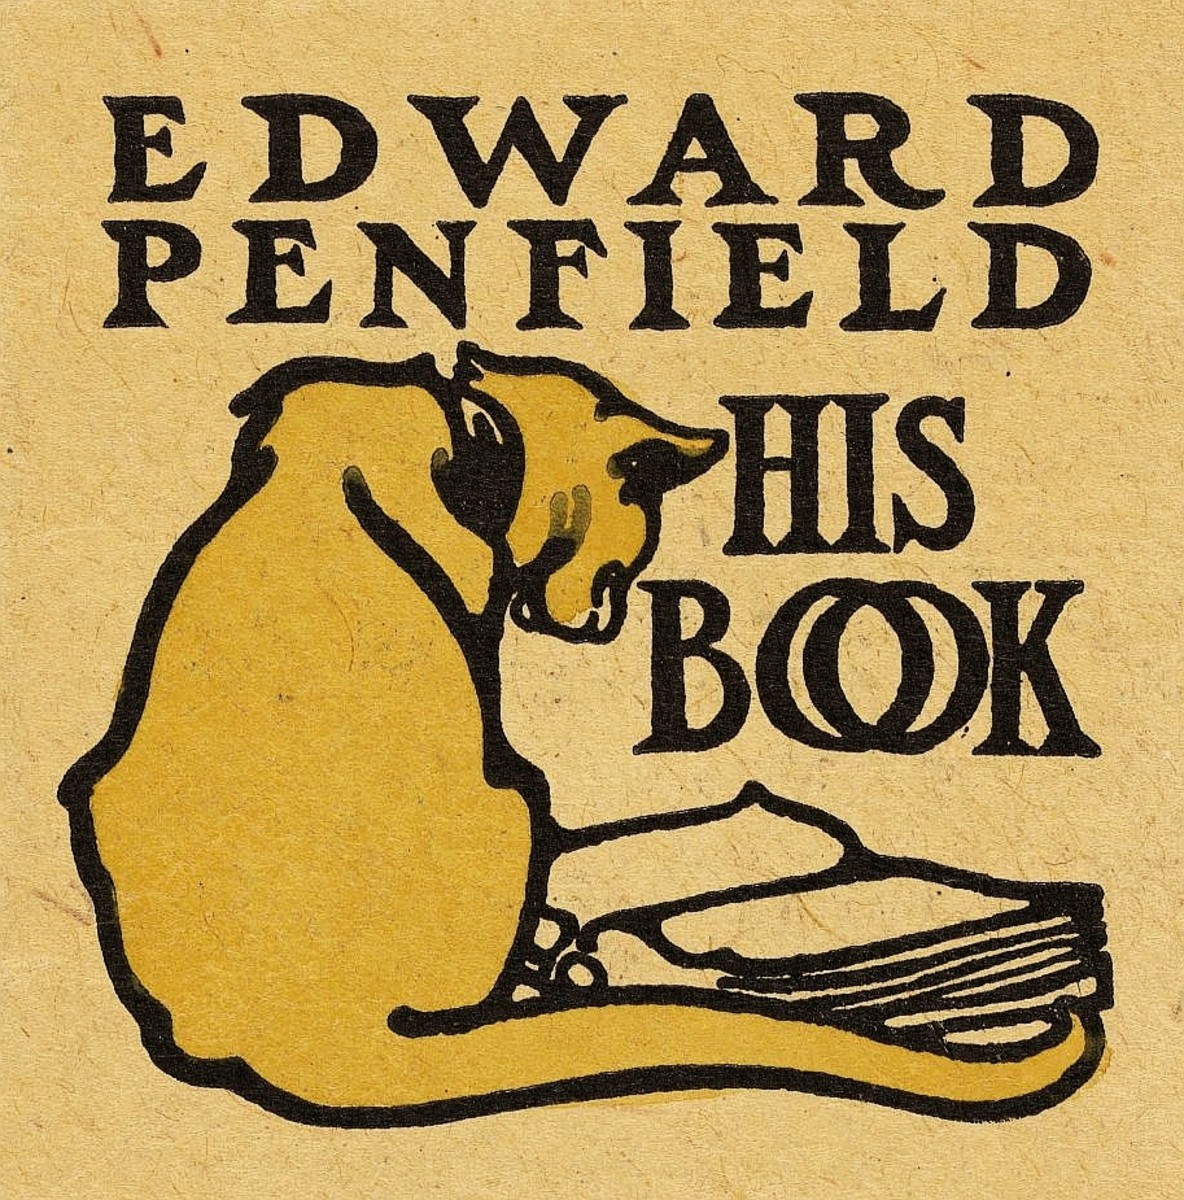 Bookplate of the American illustrator Edward Penfield (1866-1925)